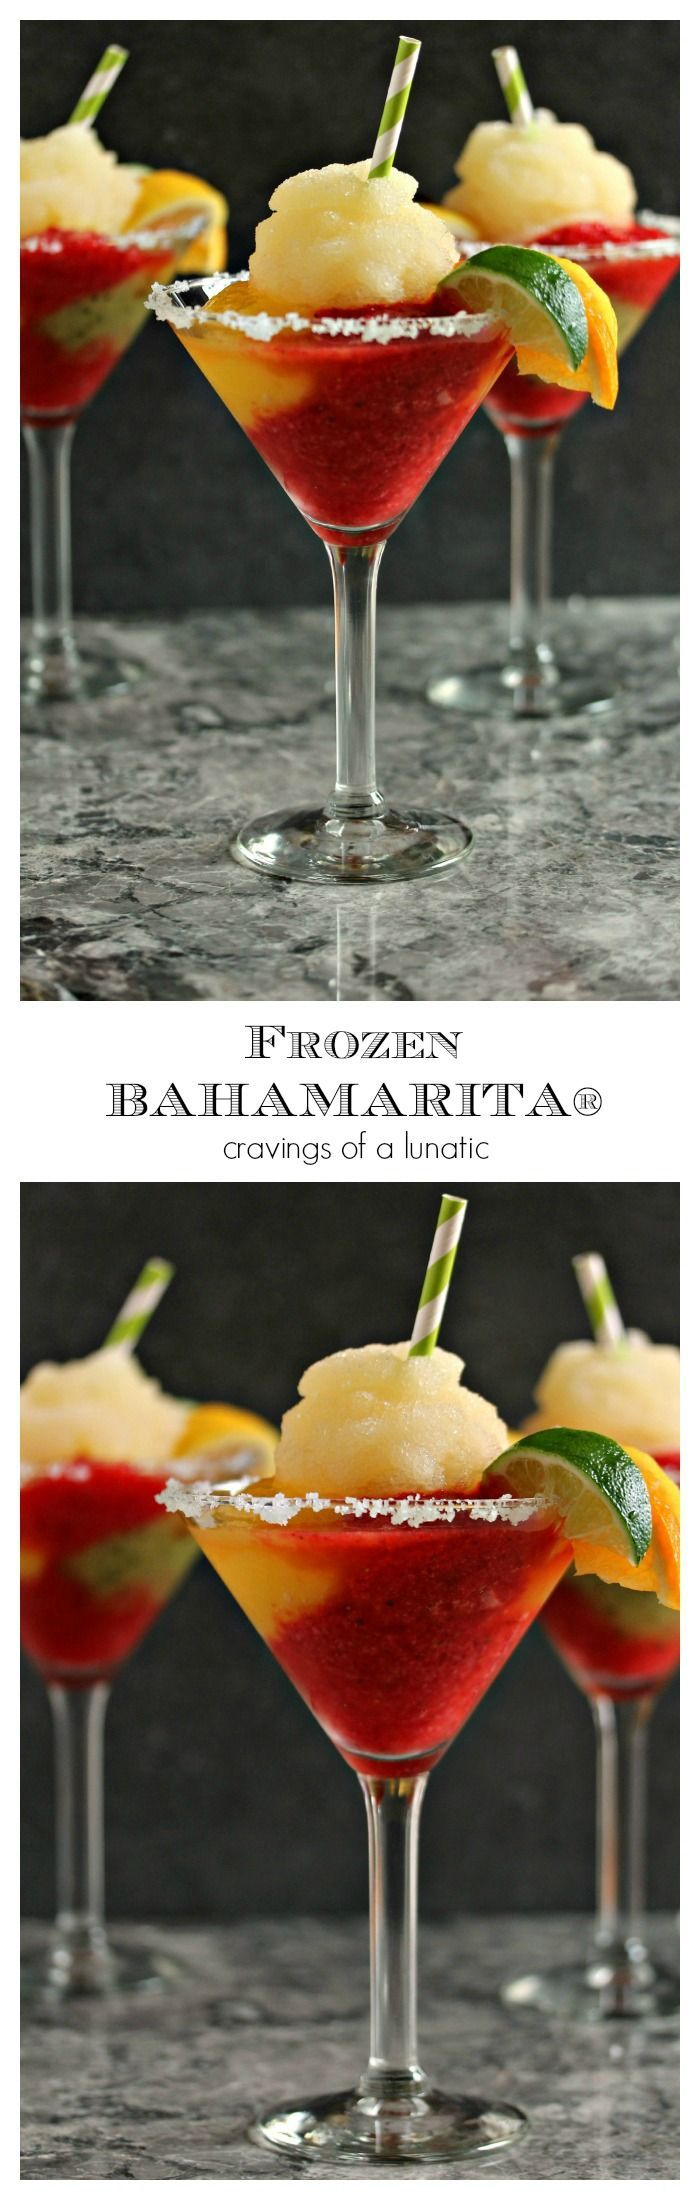 Copycat Frozen Bahamarita from cravingsofalunatic.com. This Frozen Margarita recipe is sure to be a hit at your next party. It is made with Tequila, kiwi, strawberry and mango ices and served with a shot of Cactus Juice Schnapps. There is also a recipe for a virgin version! Happy Hour for all! #drinks #cocktail #beverage #summer